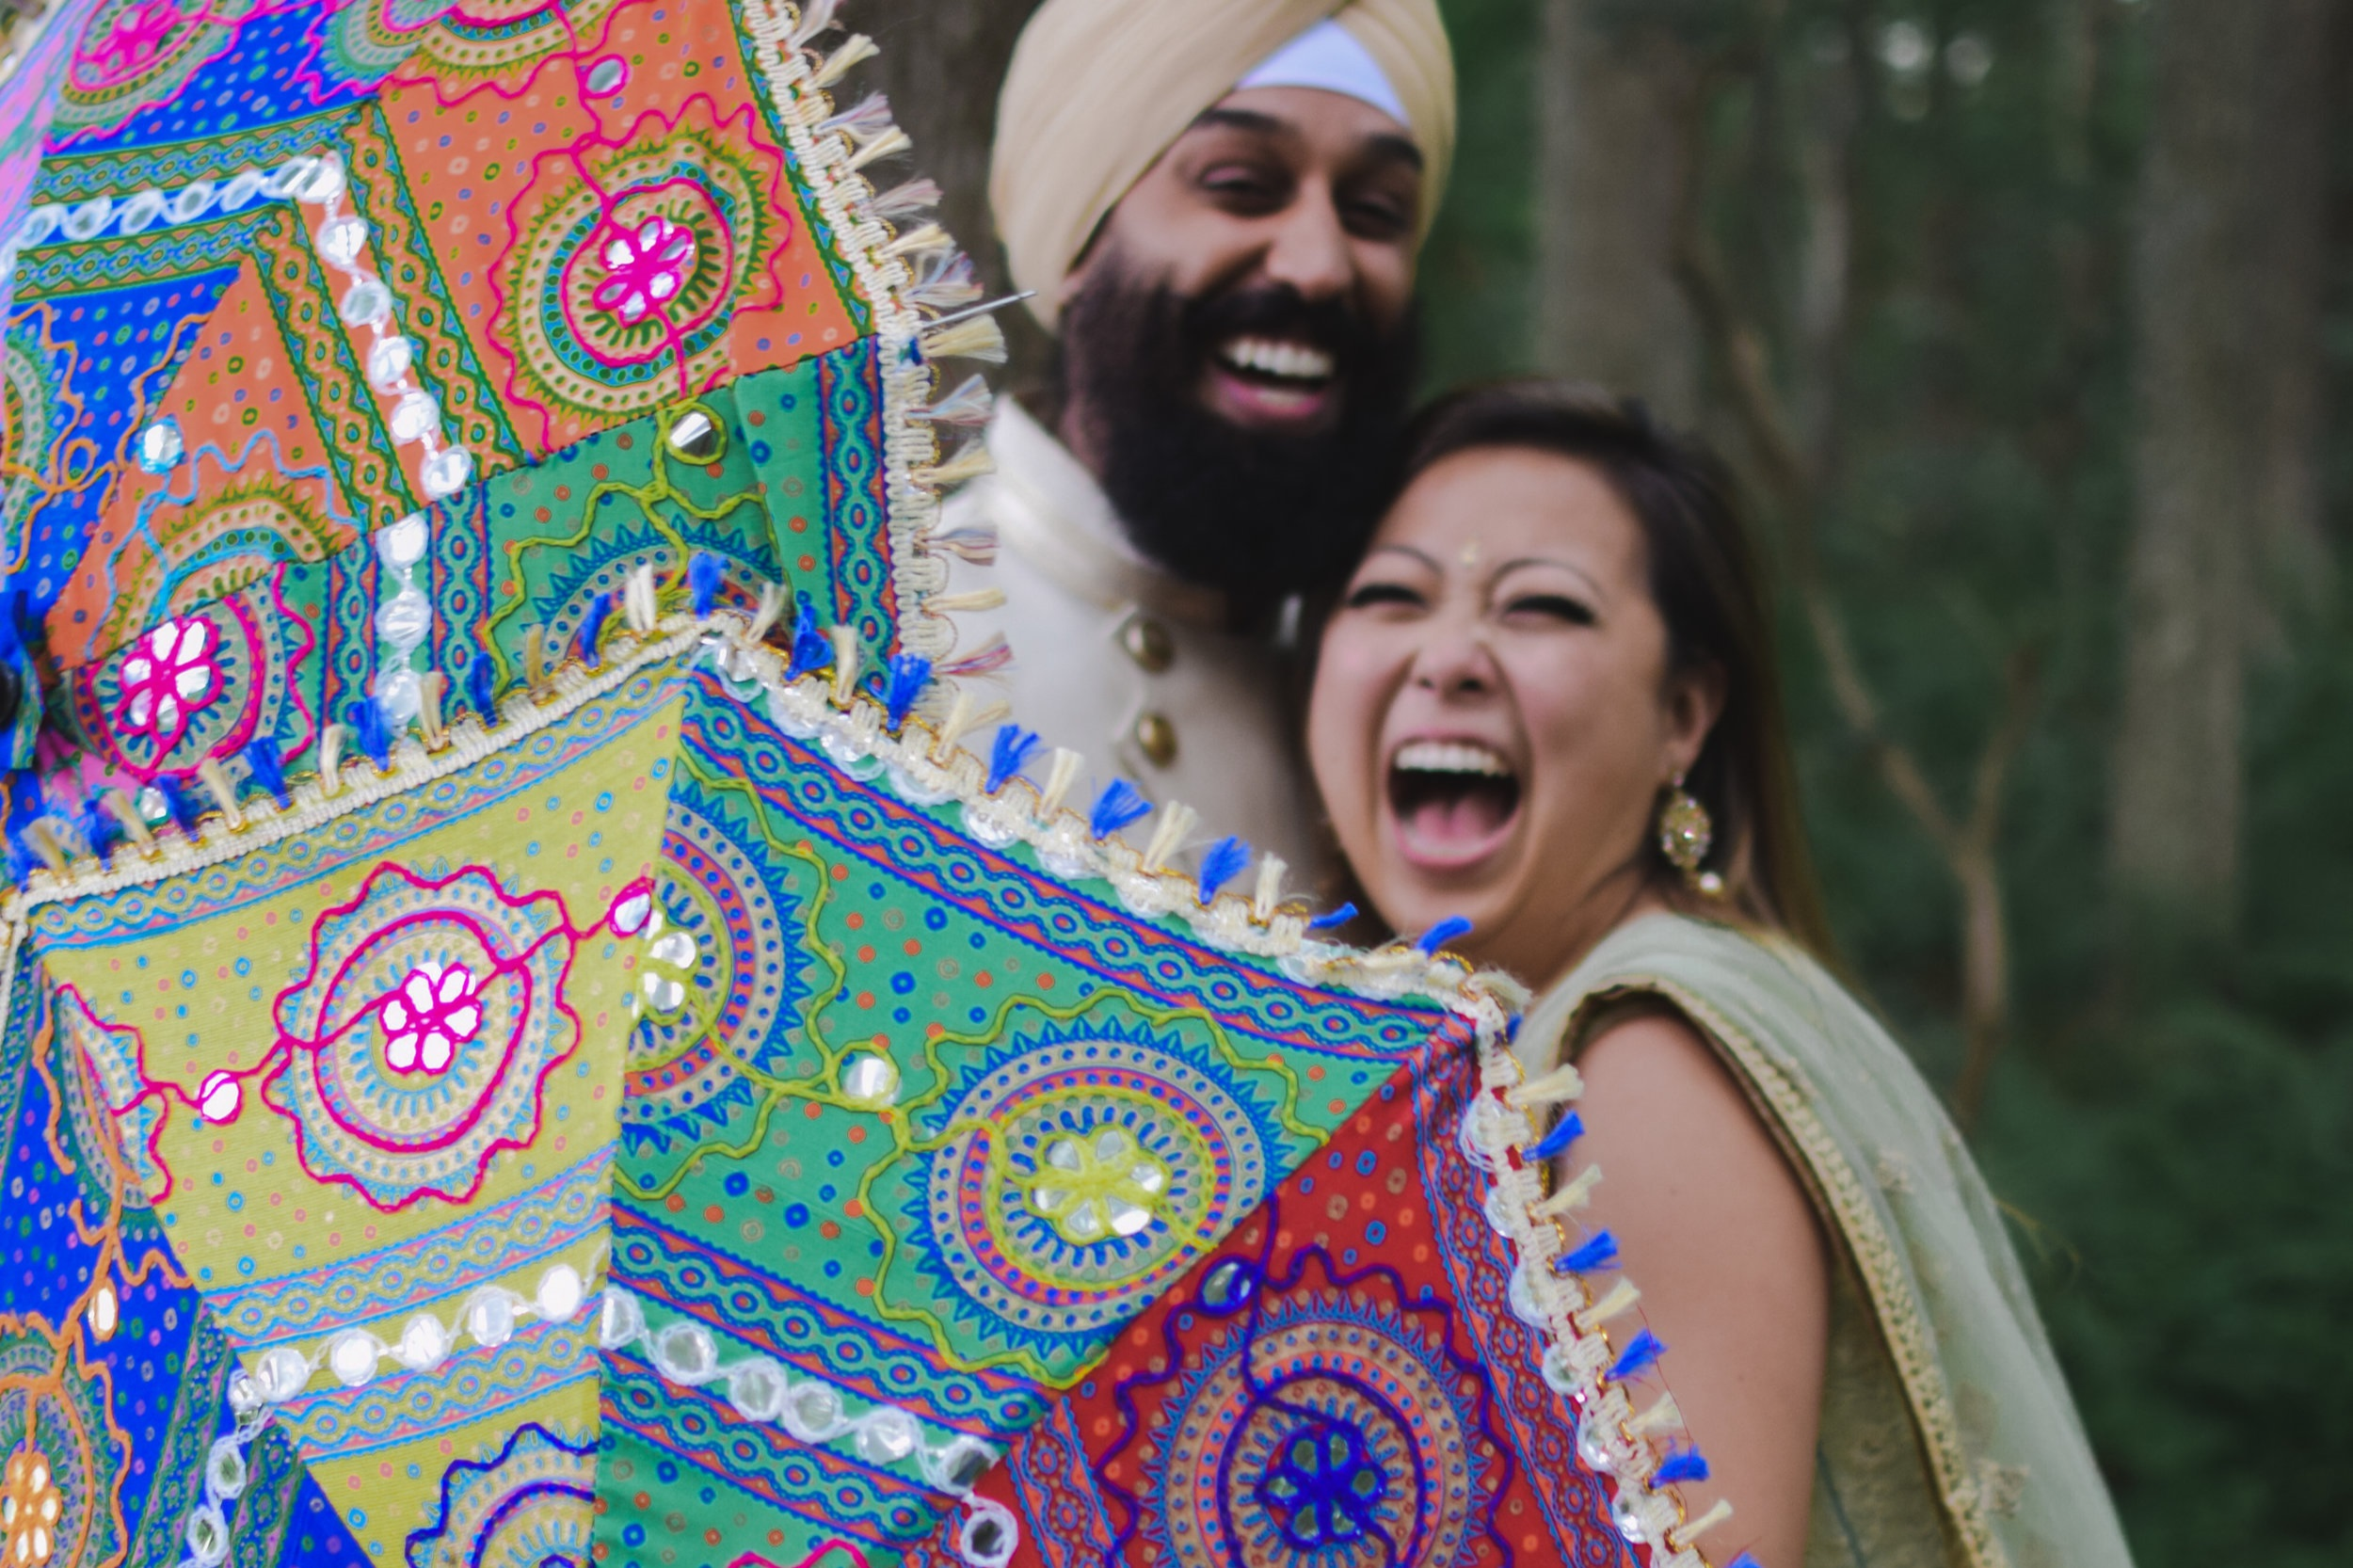 // Mimi + Raj's Sangeet // - What an HONOR! I had so much fun photographing this gorgeous, colorful, exciting sangeet. Loved every minute of it. This is probably the cutest couple around as well 💚 They made each other laugh and giggle all night long. It was an honor to document this special night 😍Album is still in editing — Photo links to sneak peek on facebook